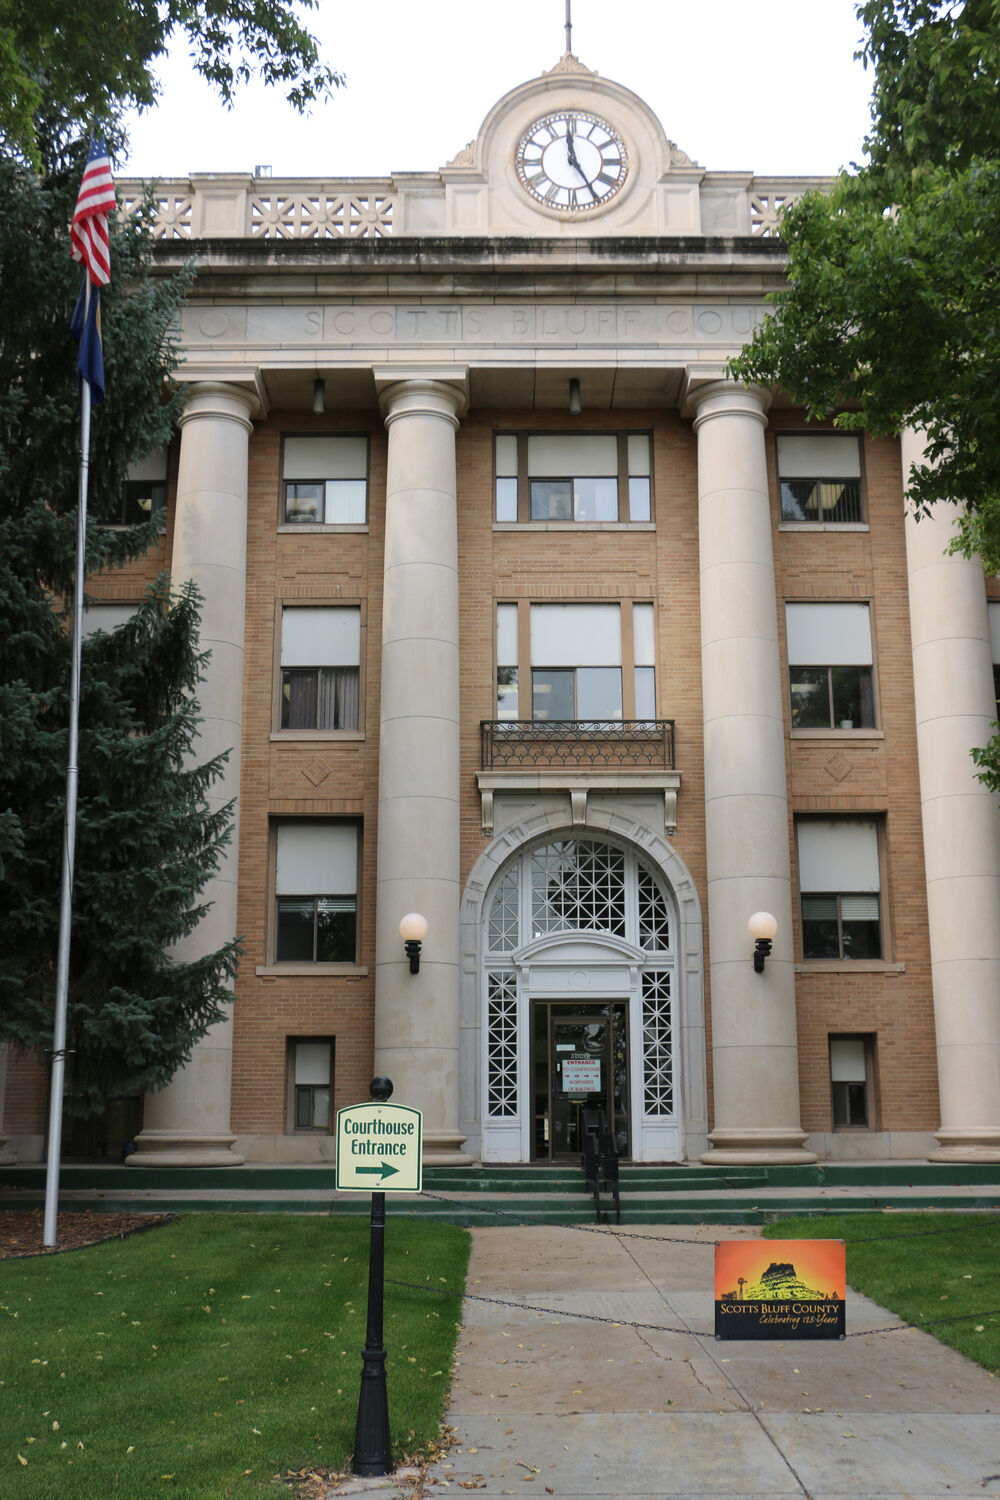 Scotts Bluff County building reaches 100 years